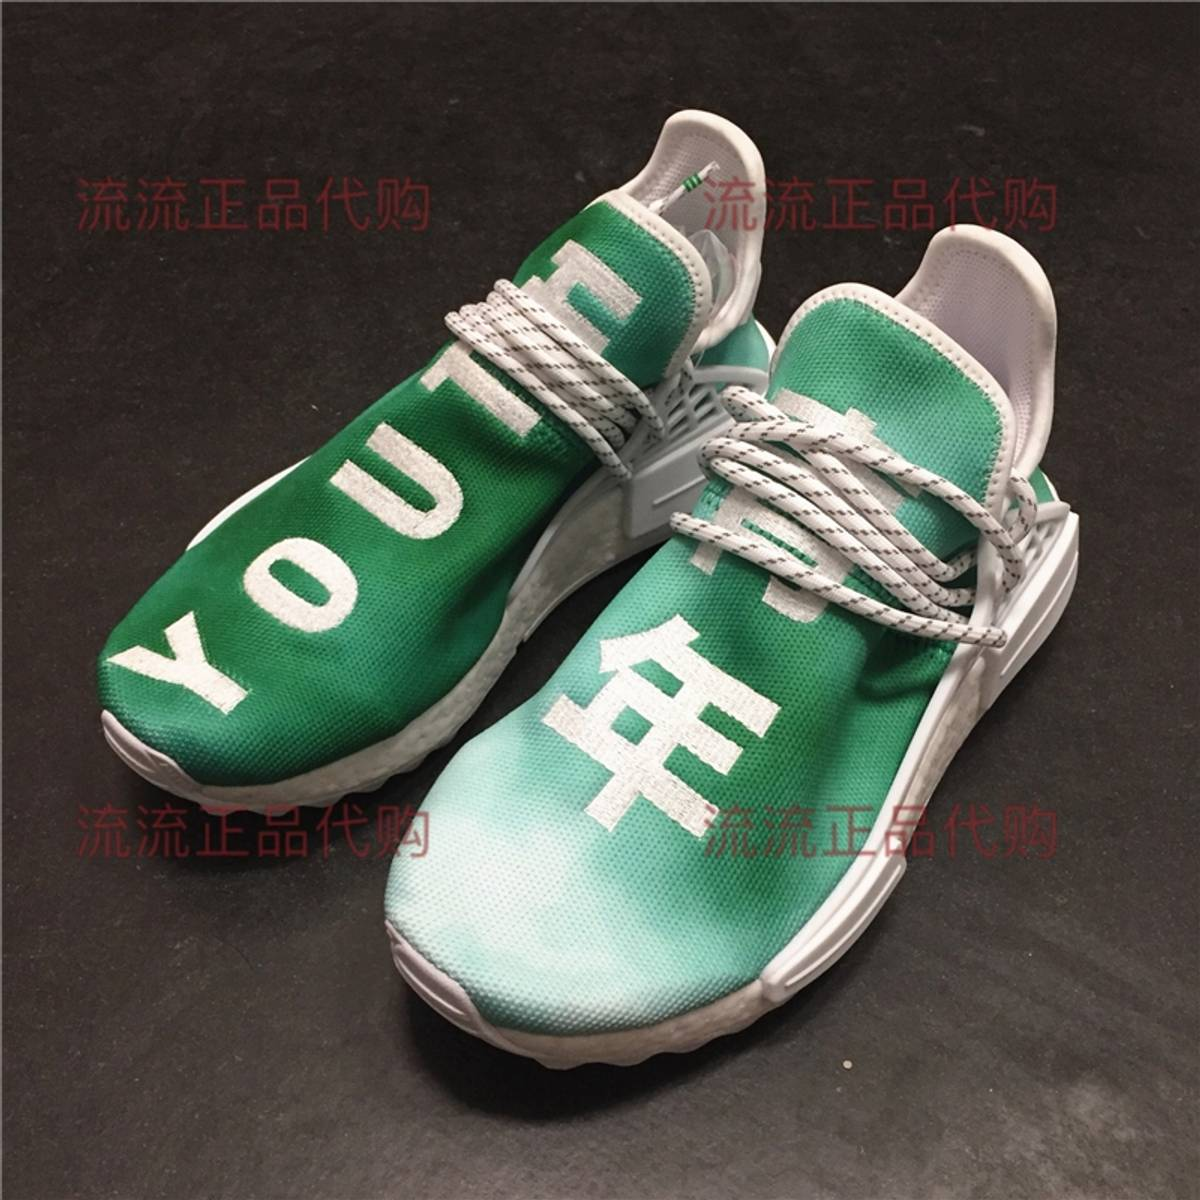 new arrival 1699a 2760b Adidas × Pharrell Adidas China Exclusive Human Race Nmd Green Size 10.5 $699